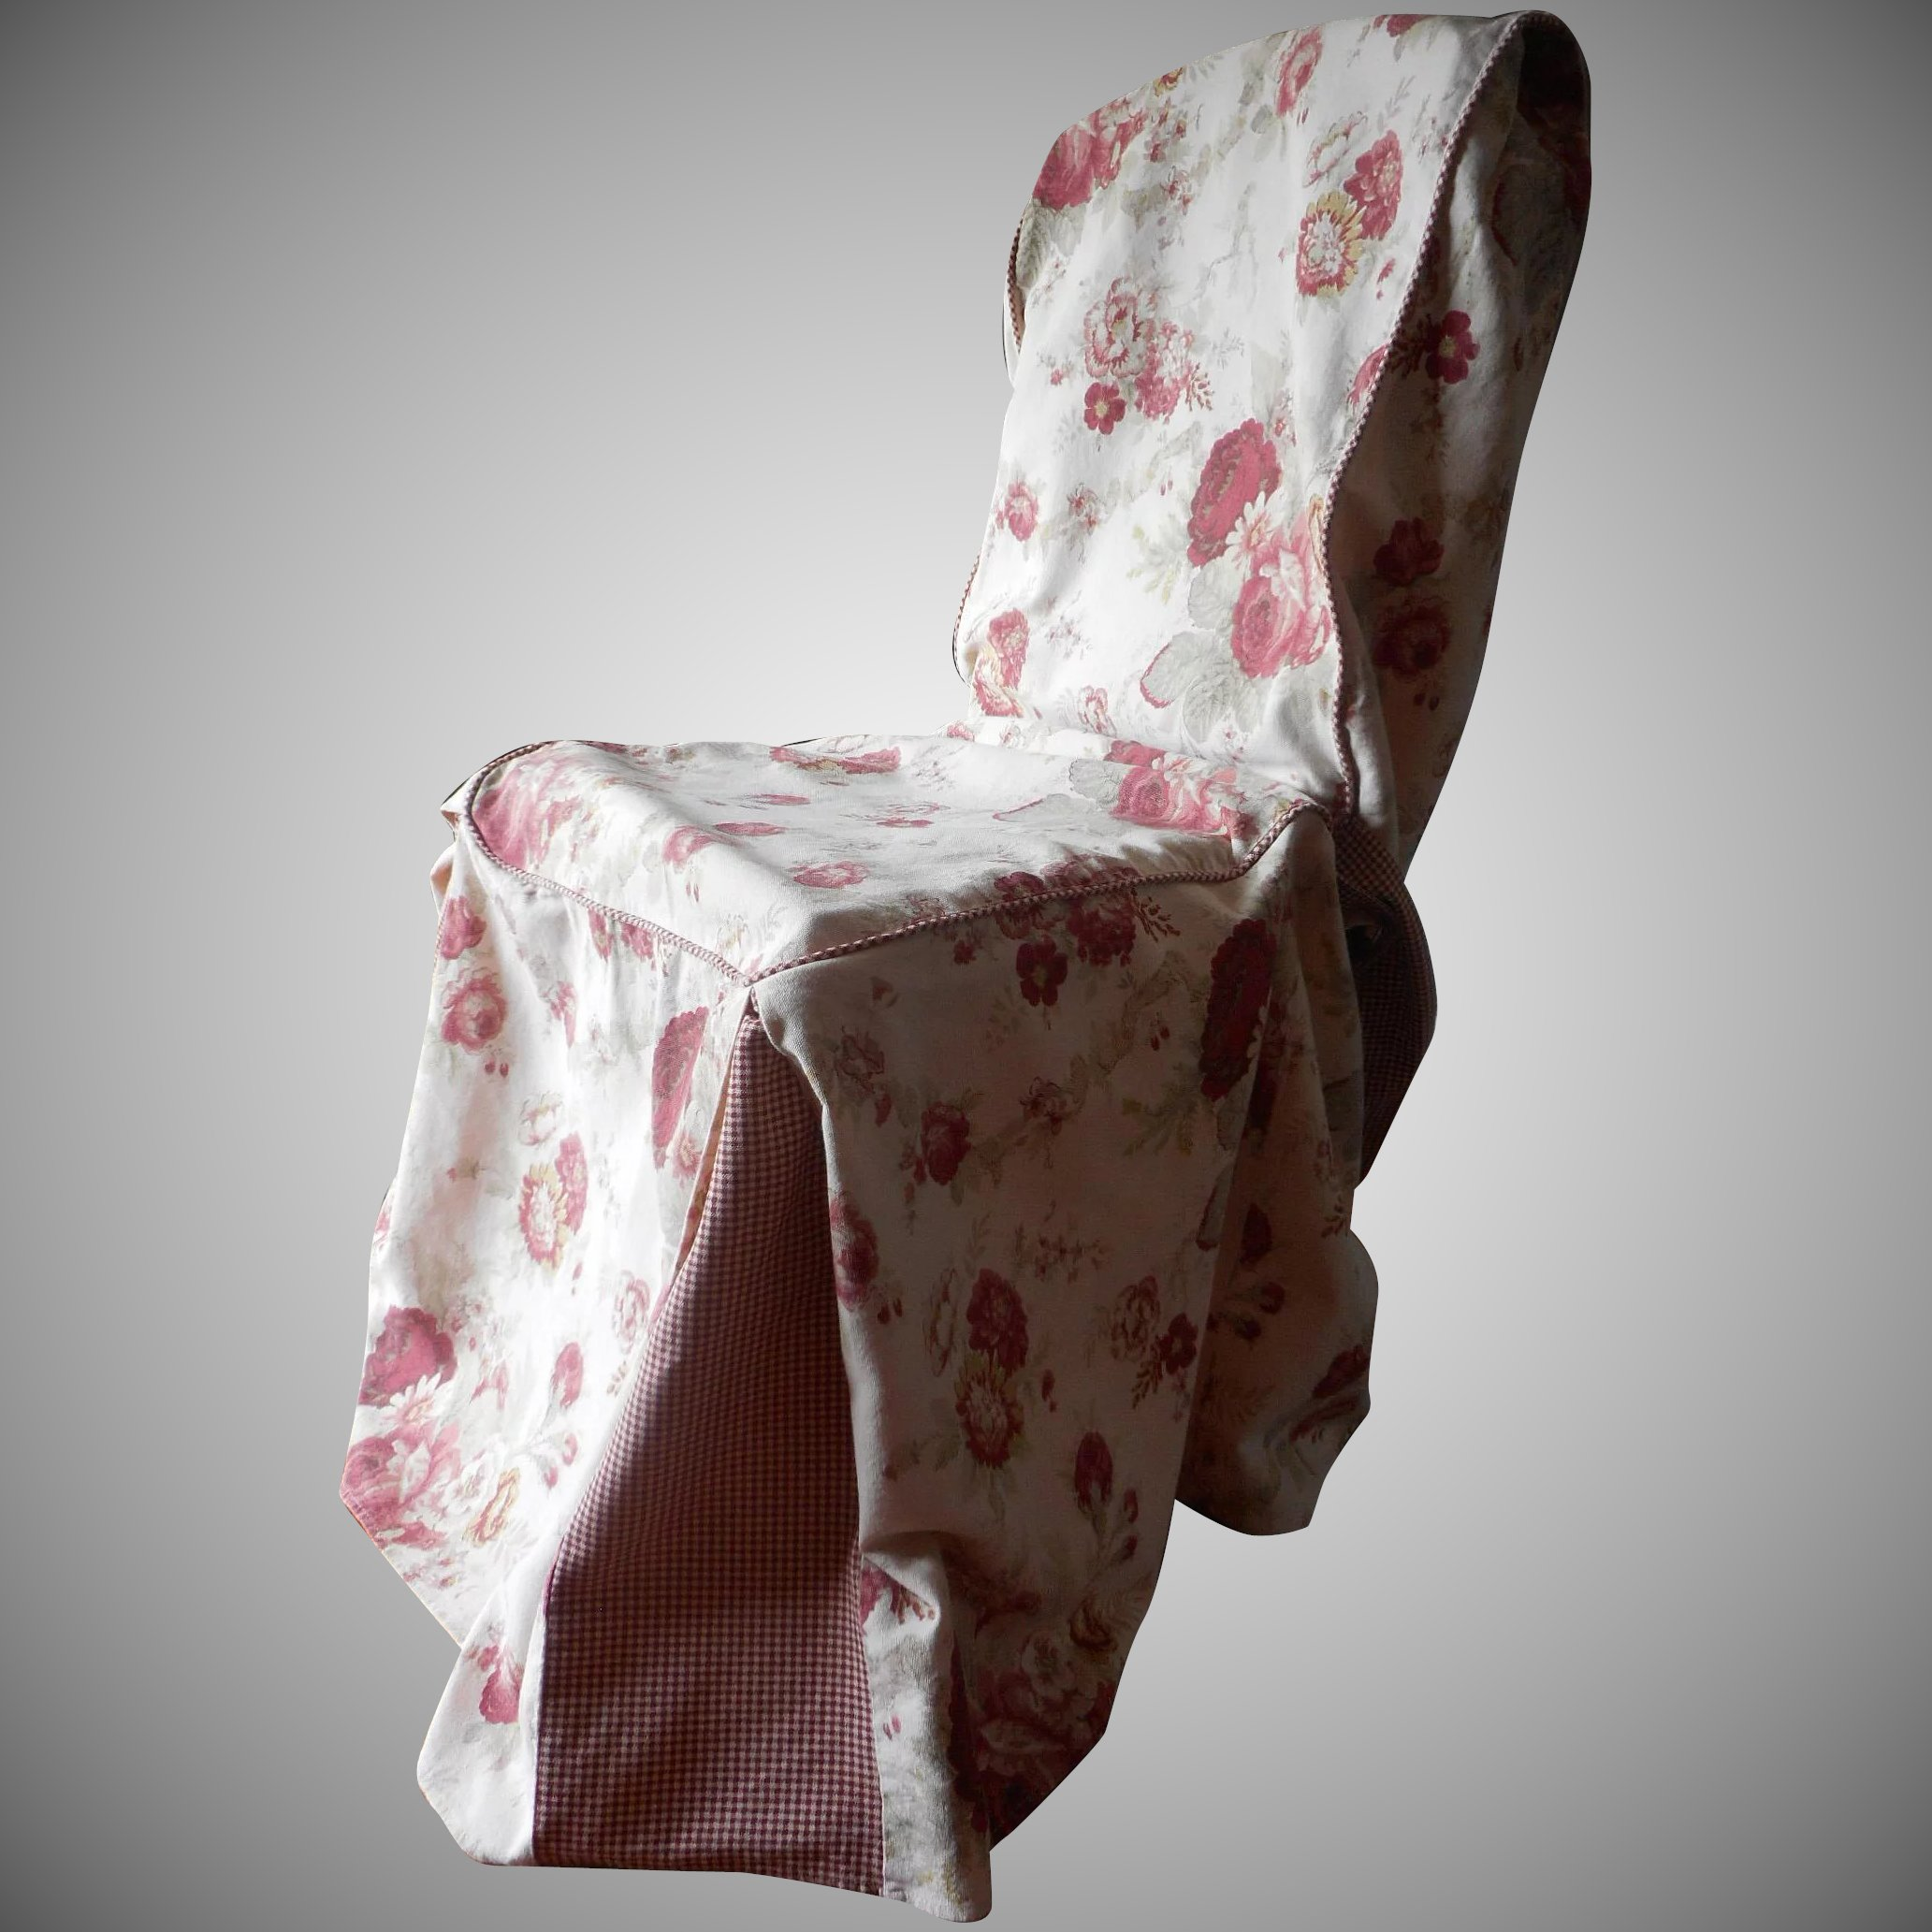 chair covers and more norfolk stand up exercise rose vintage waverly cover slipcover garden